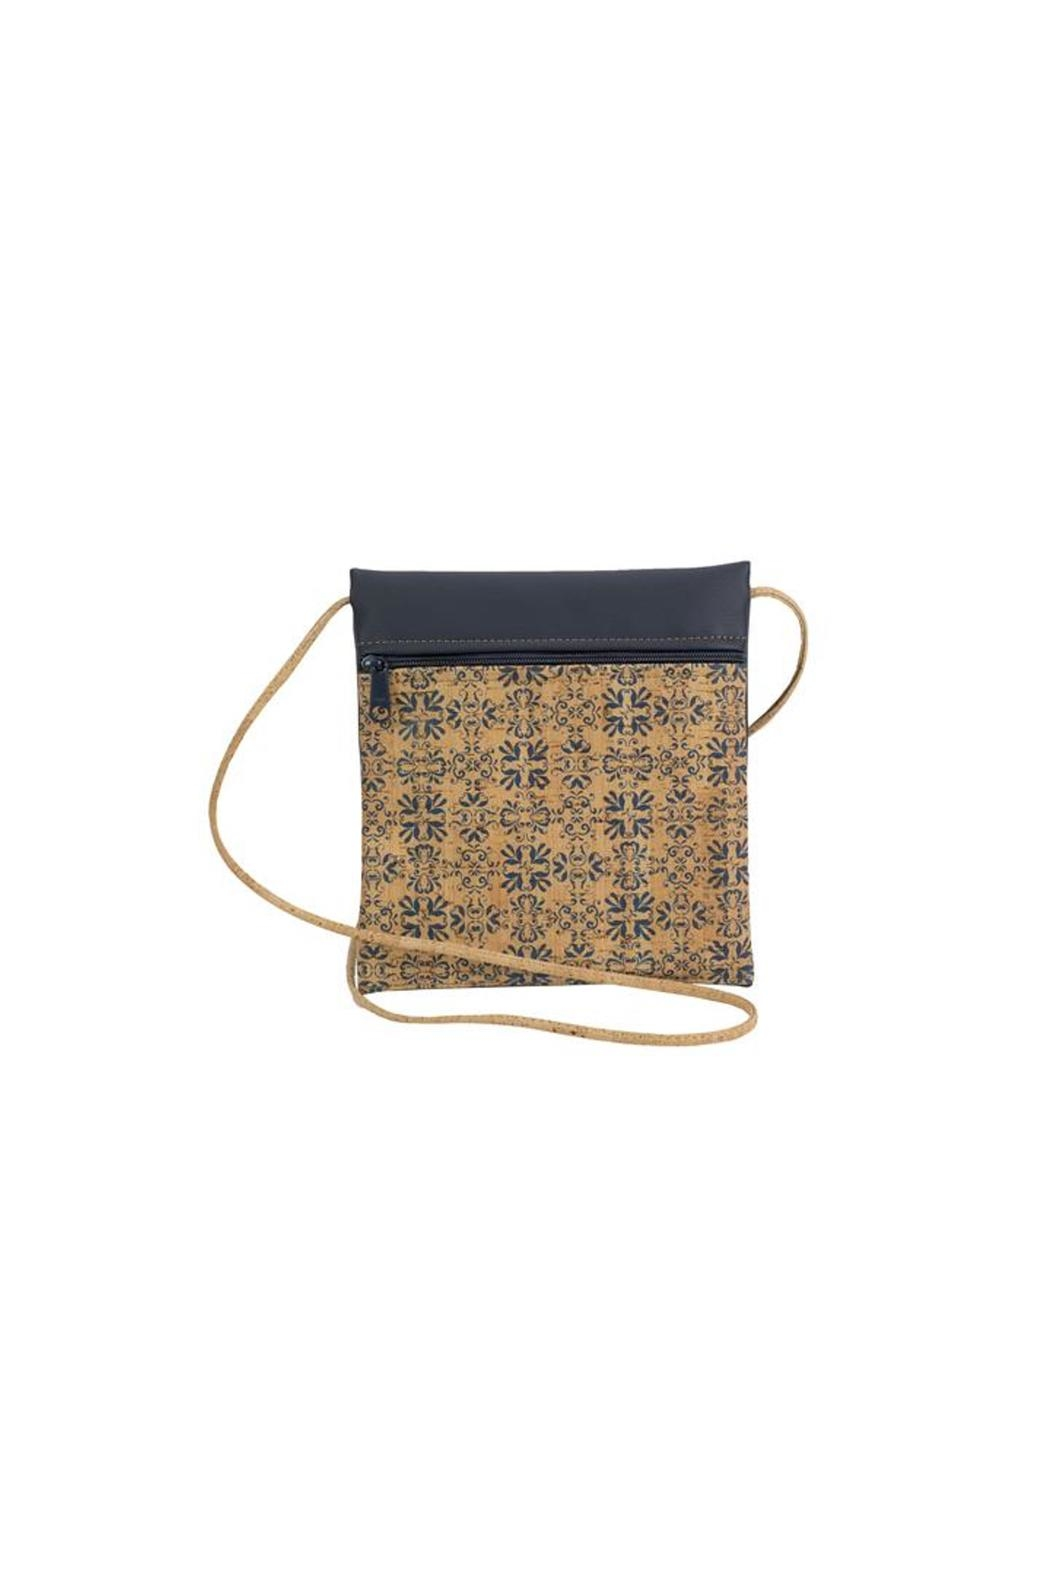 natalie therése Cork Cross Body - Front Cropped Image